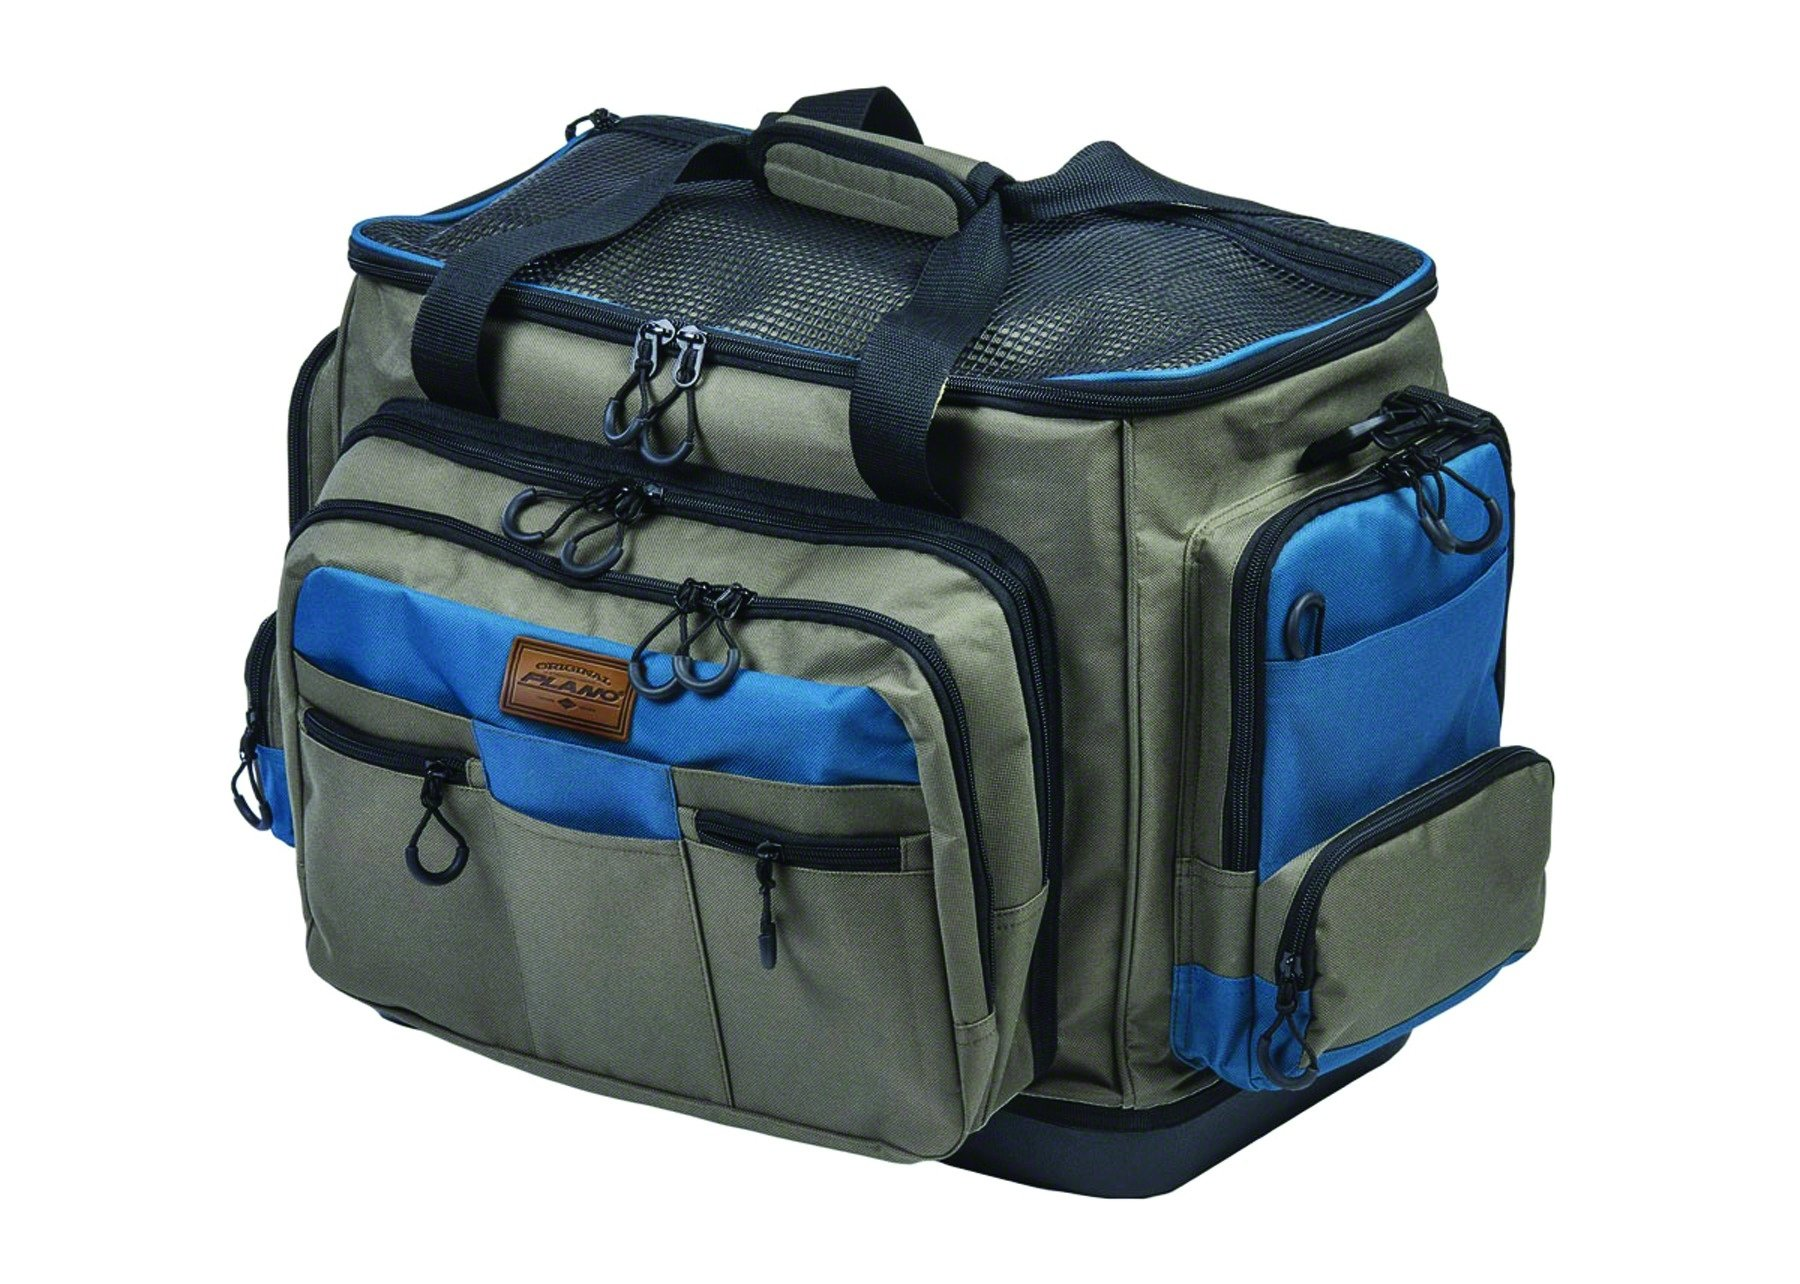 Plano 463700 m-Series Tackle Bag by Plano